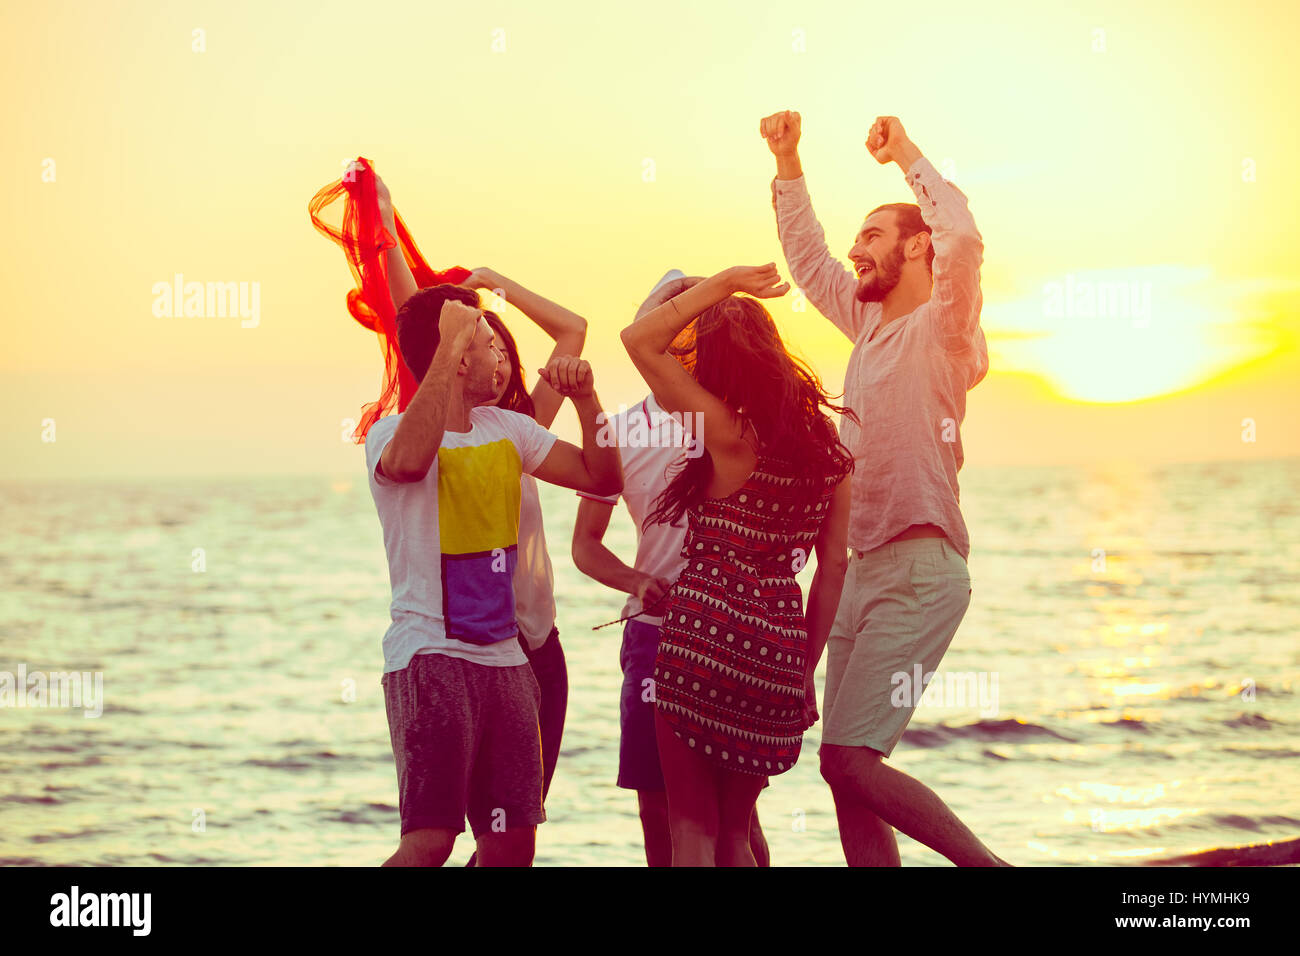 Young People Dancing On Beach at Sunset - Stock Image